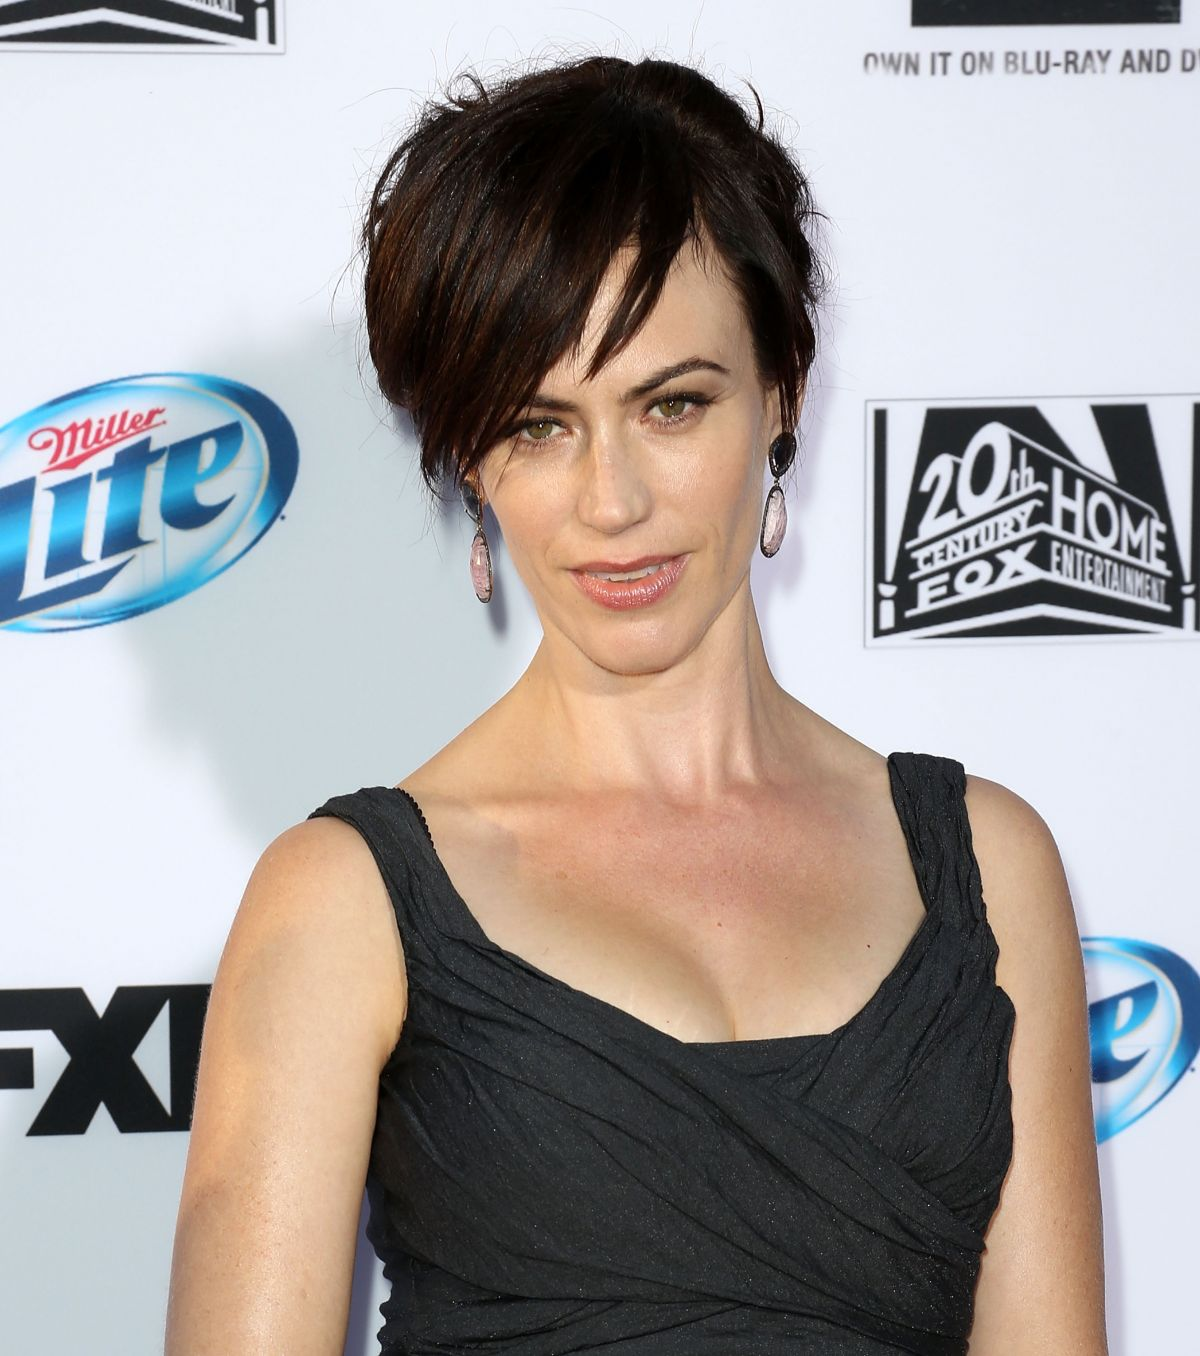 Maggie Siff At Sons Of Anarchy Season 6 Premiere In HollywoodMaggie Siff Sons Of Anarchy Season 6